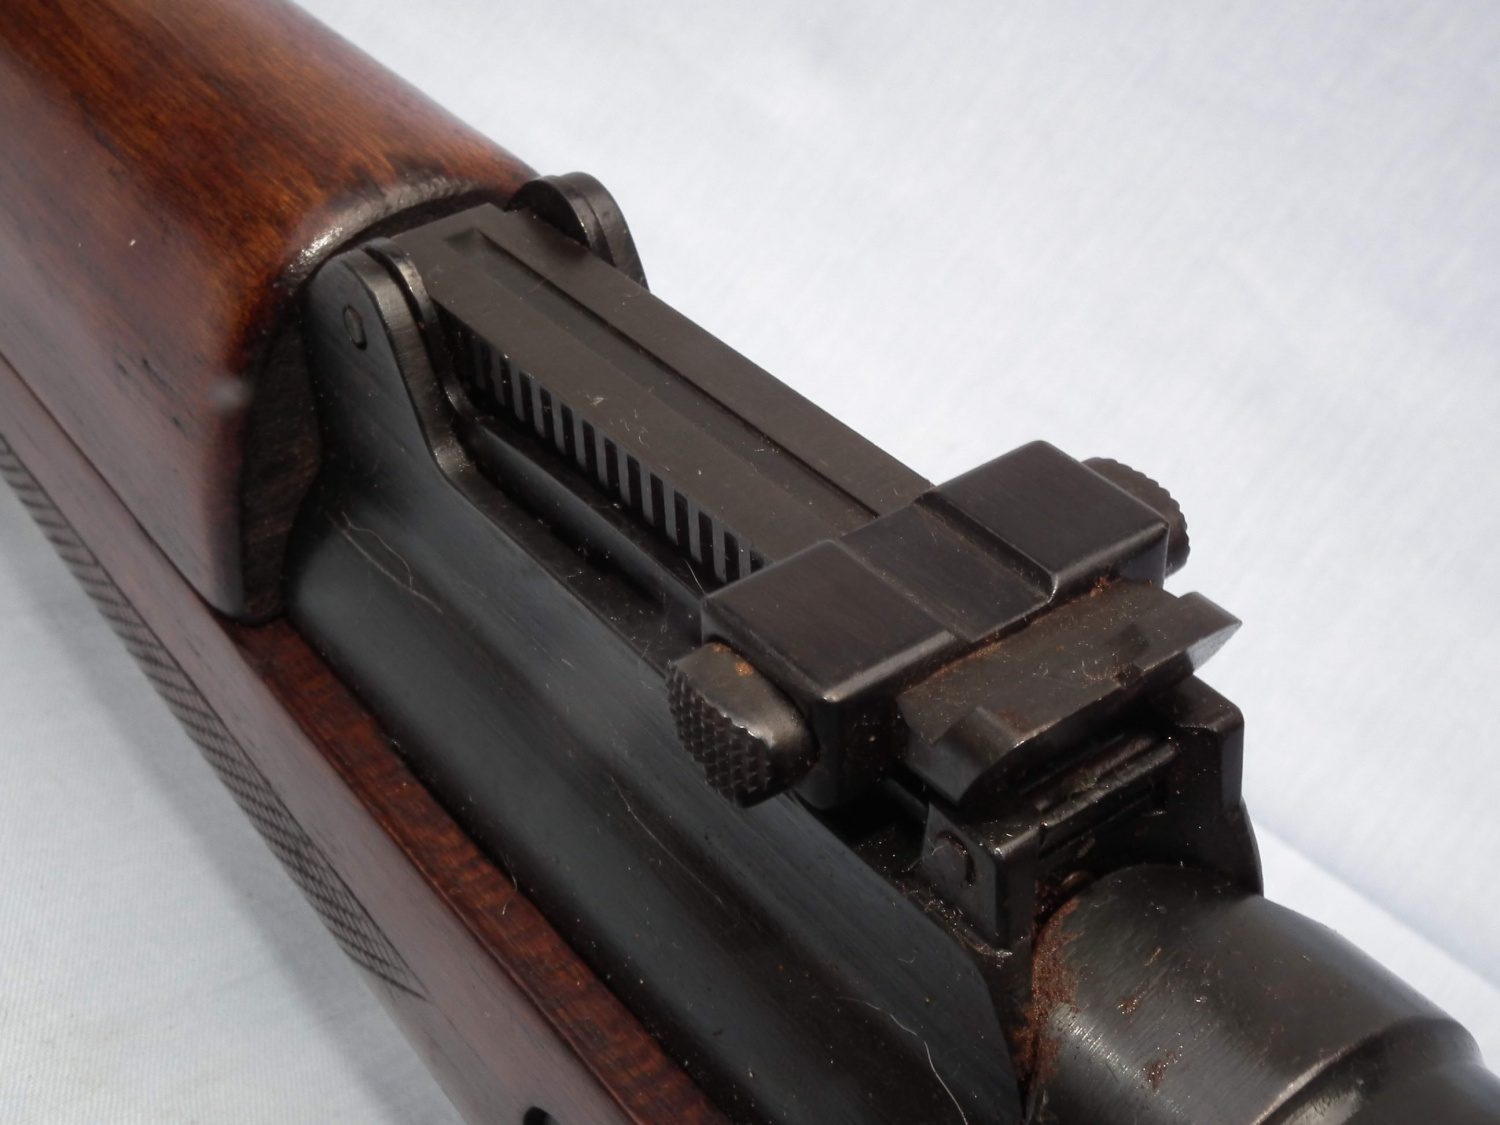 The same gun's adjustable ramp notch rear sight. It can be noticed that no range adjustment markings are present.